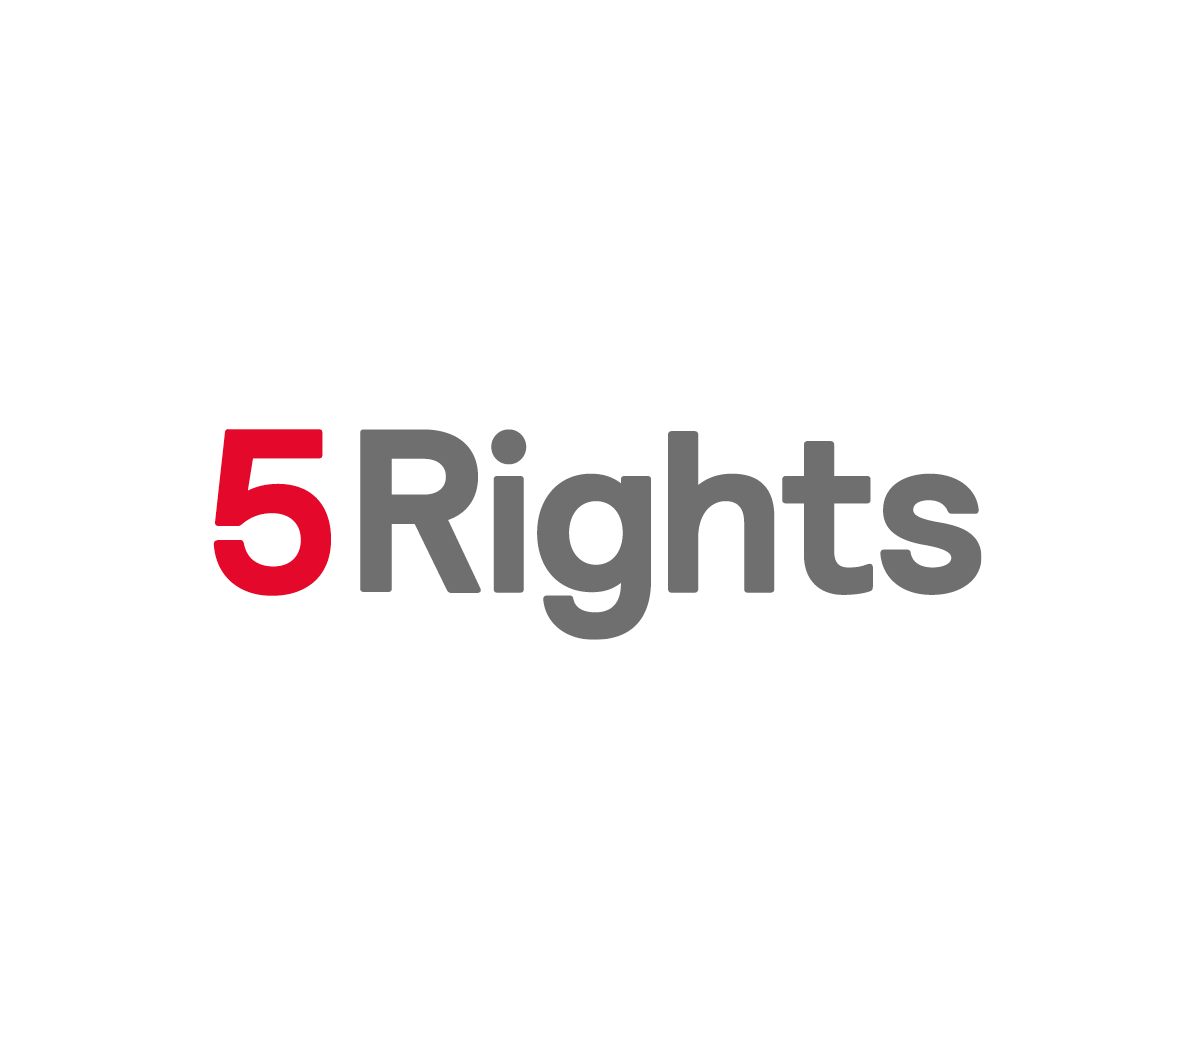 Launching a global movement to secure basic on-line rights